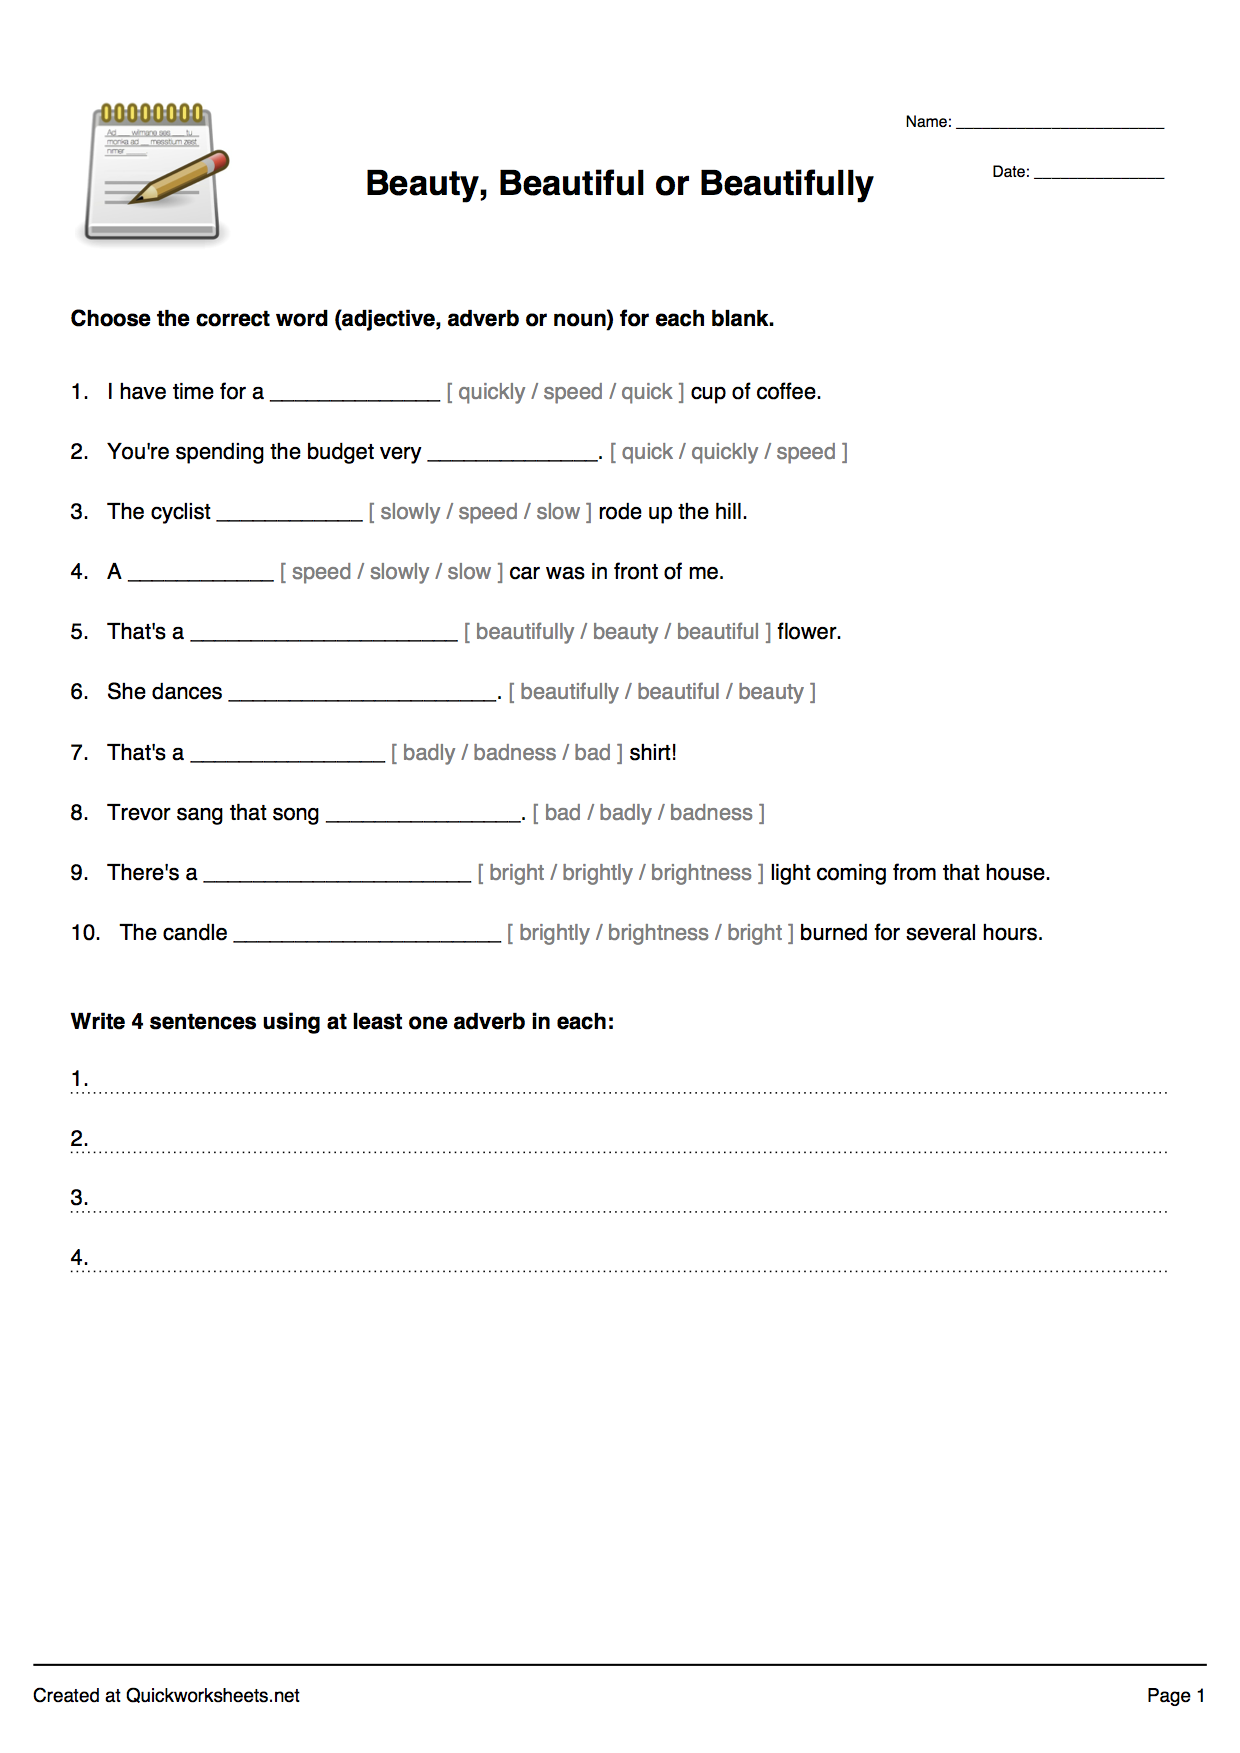 Worksheets Fill In The Blank Worksheets fill in the blank sentences worksheet maker example worksheet